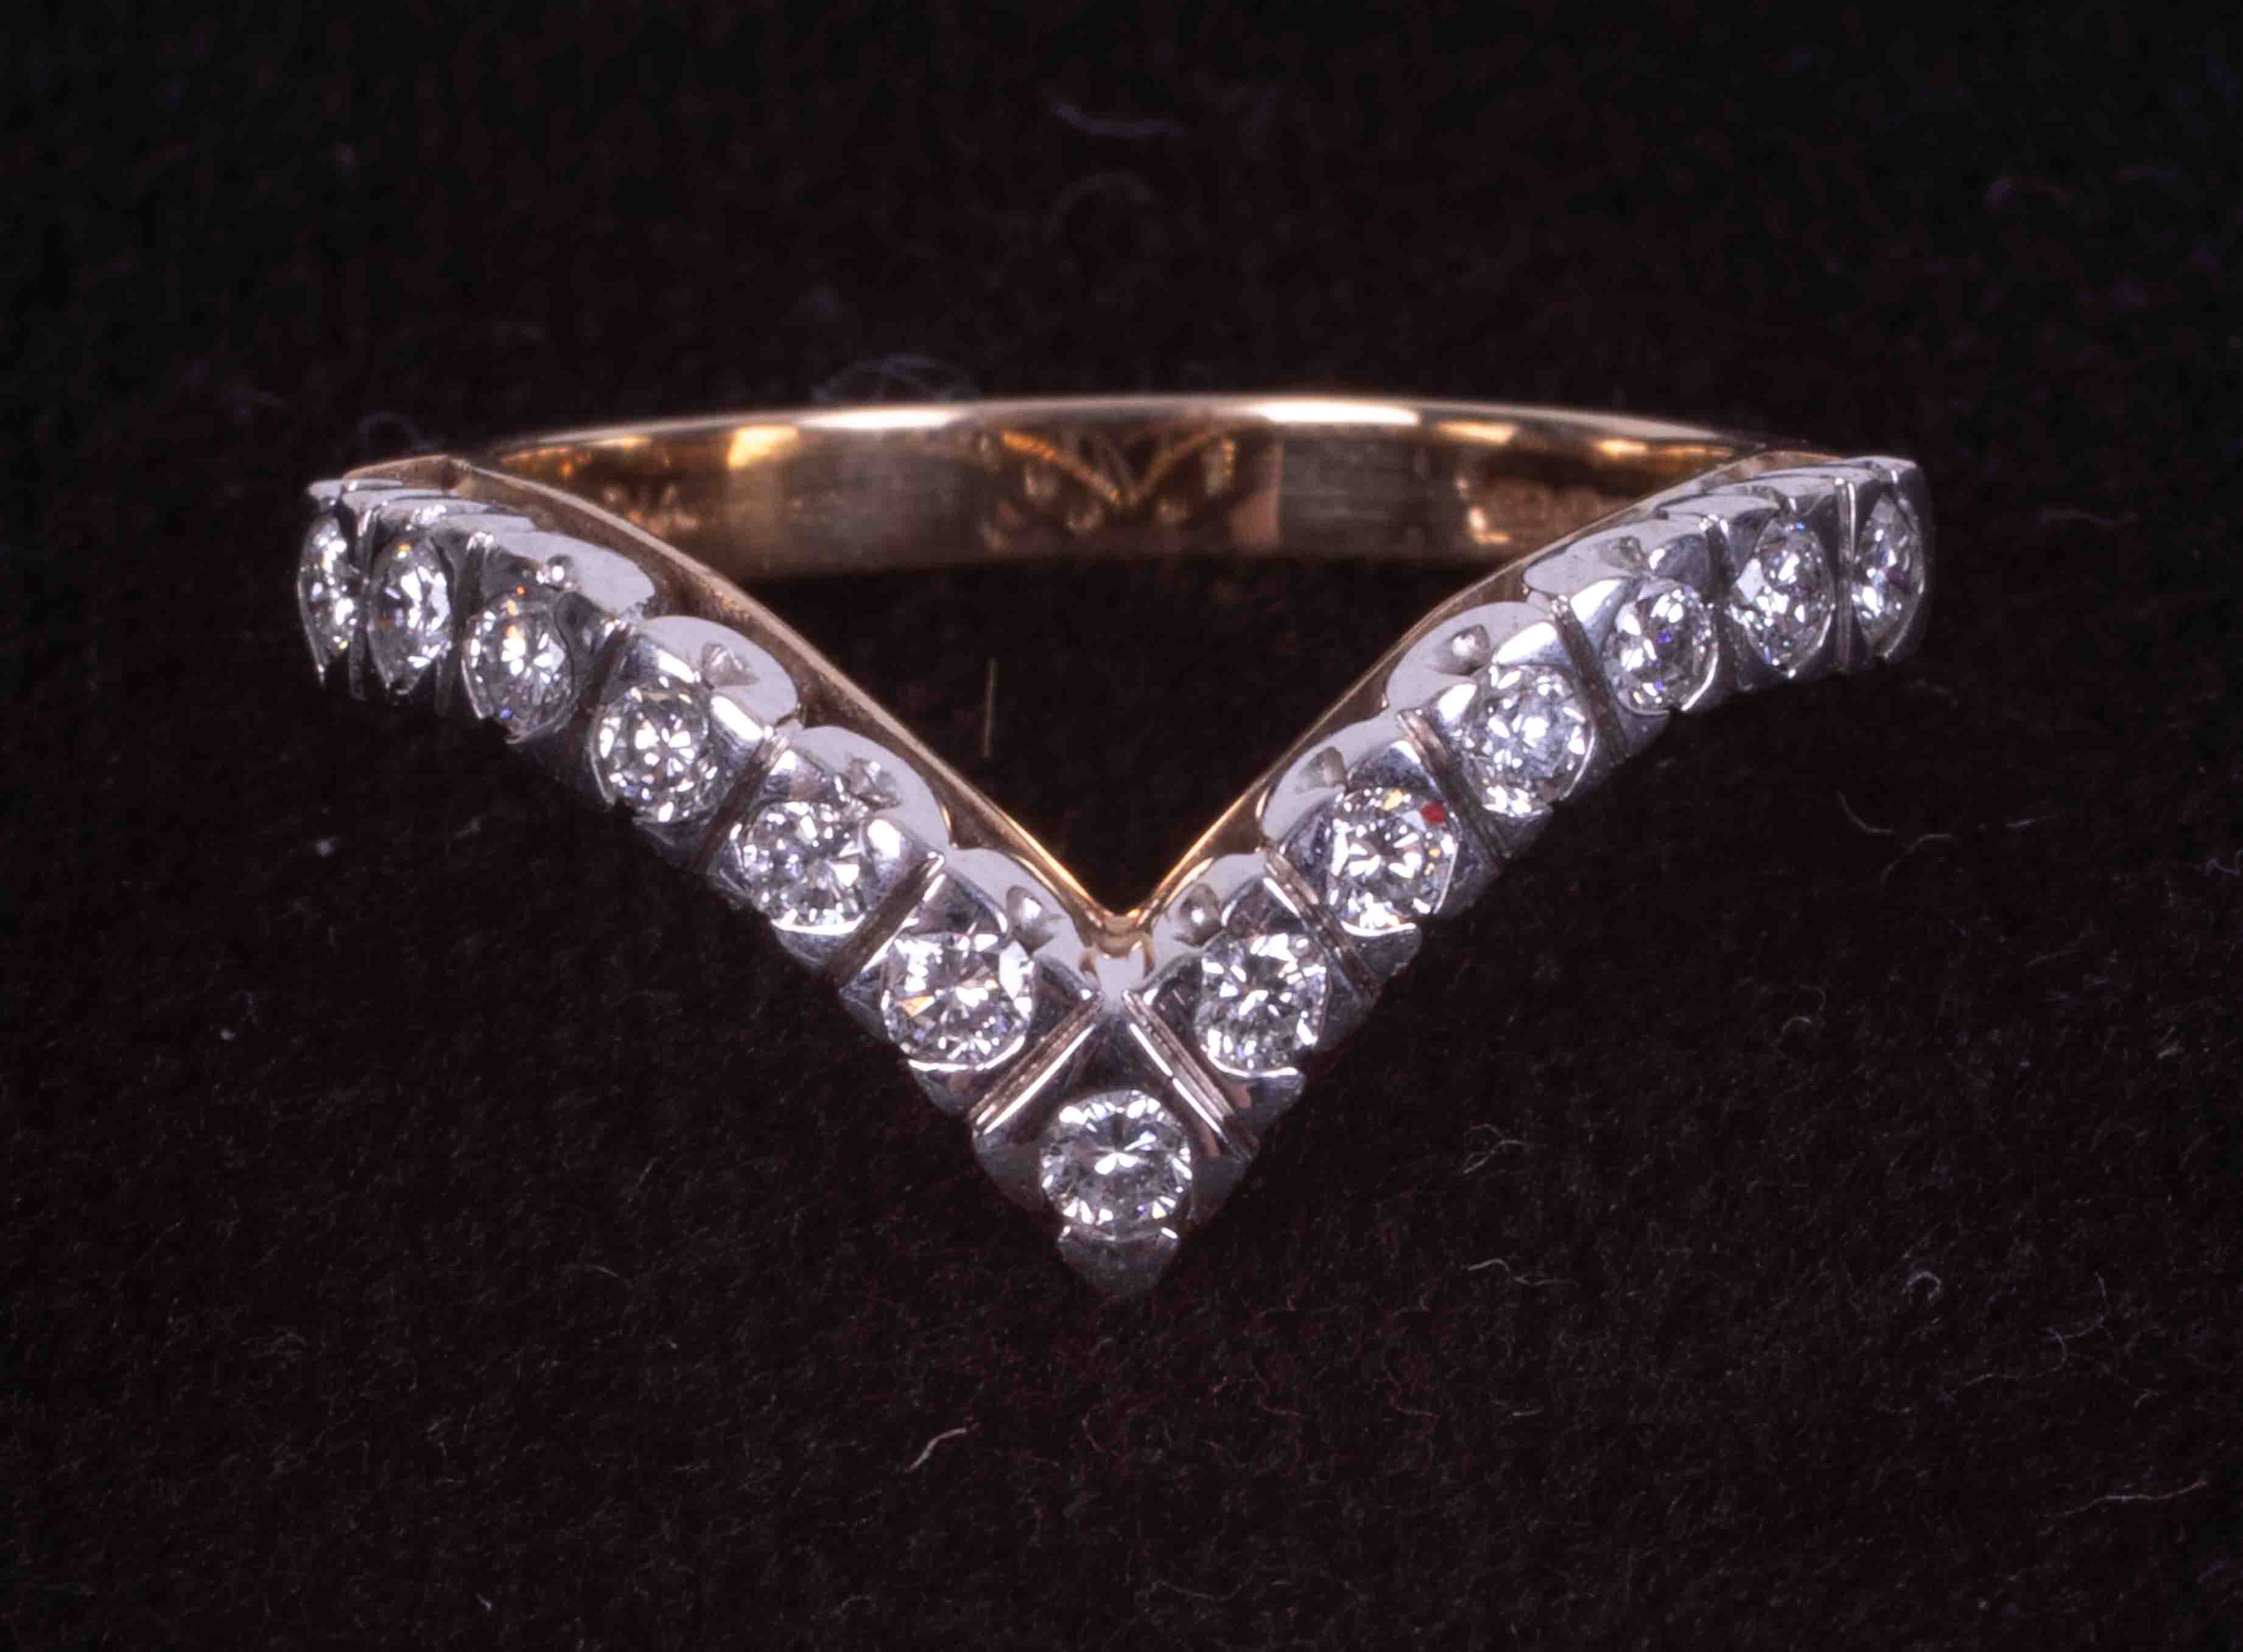 An 9ct yellow & white gold wishbone ring set with approximately 0.39 carats of round